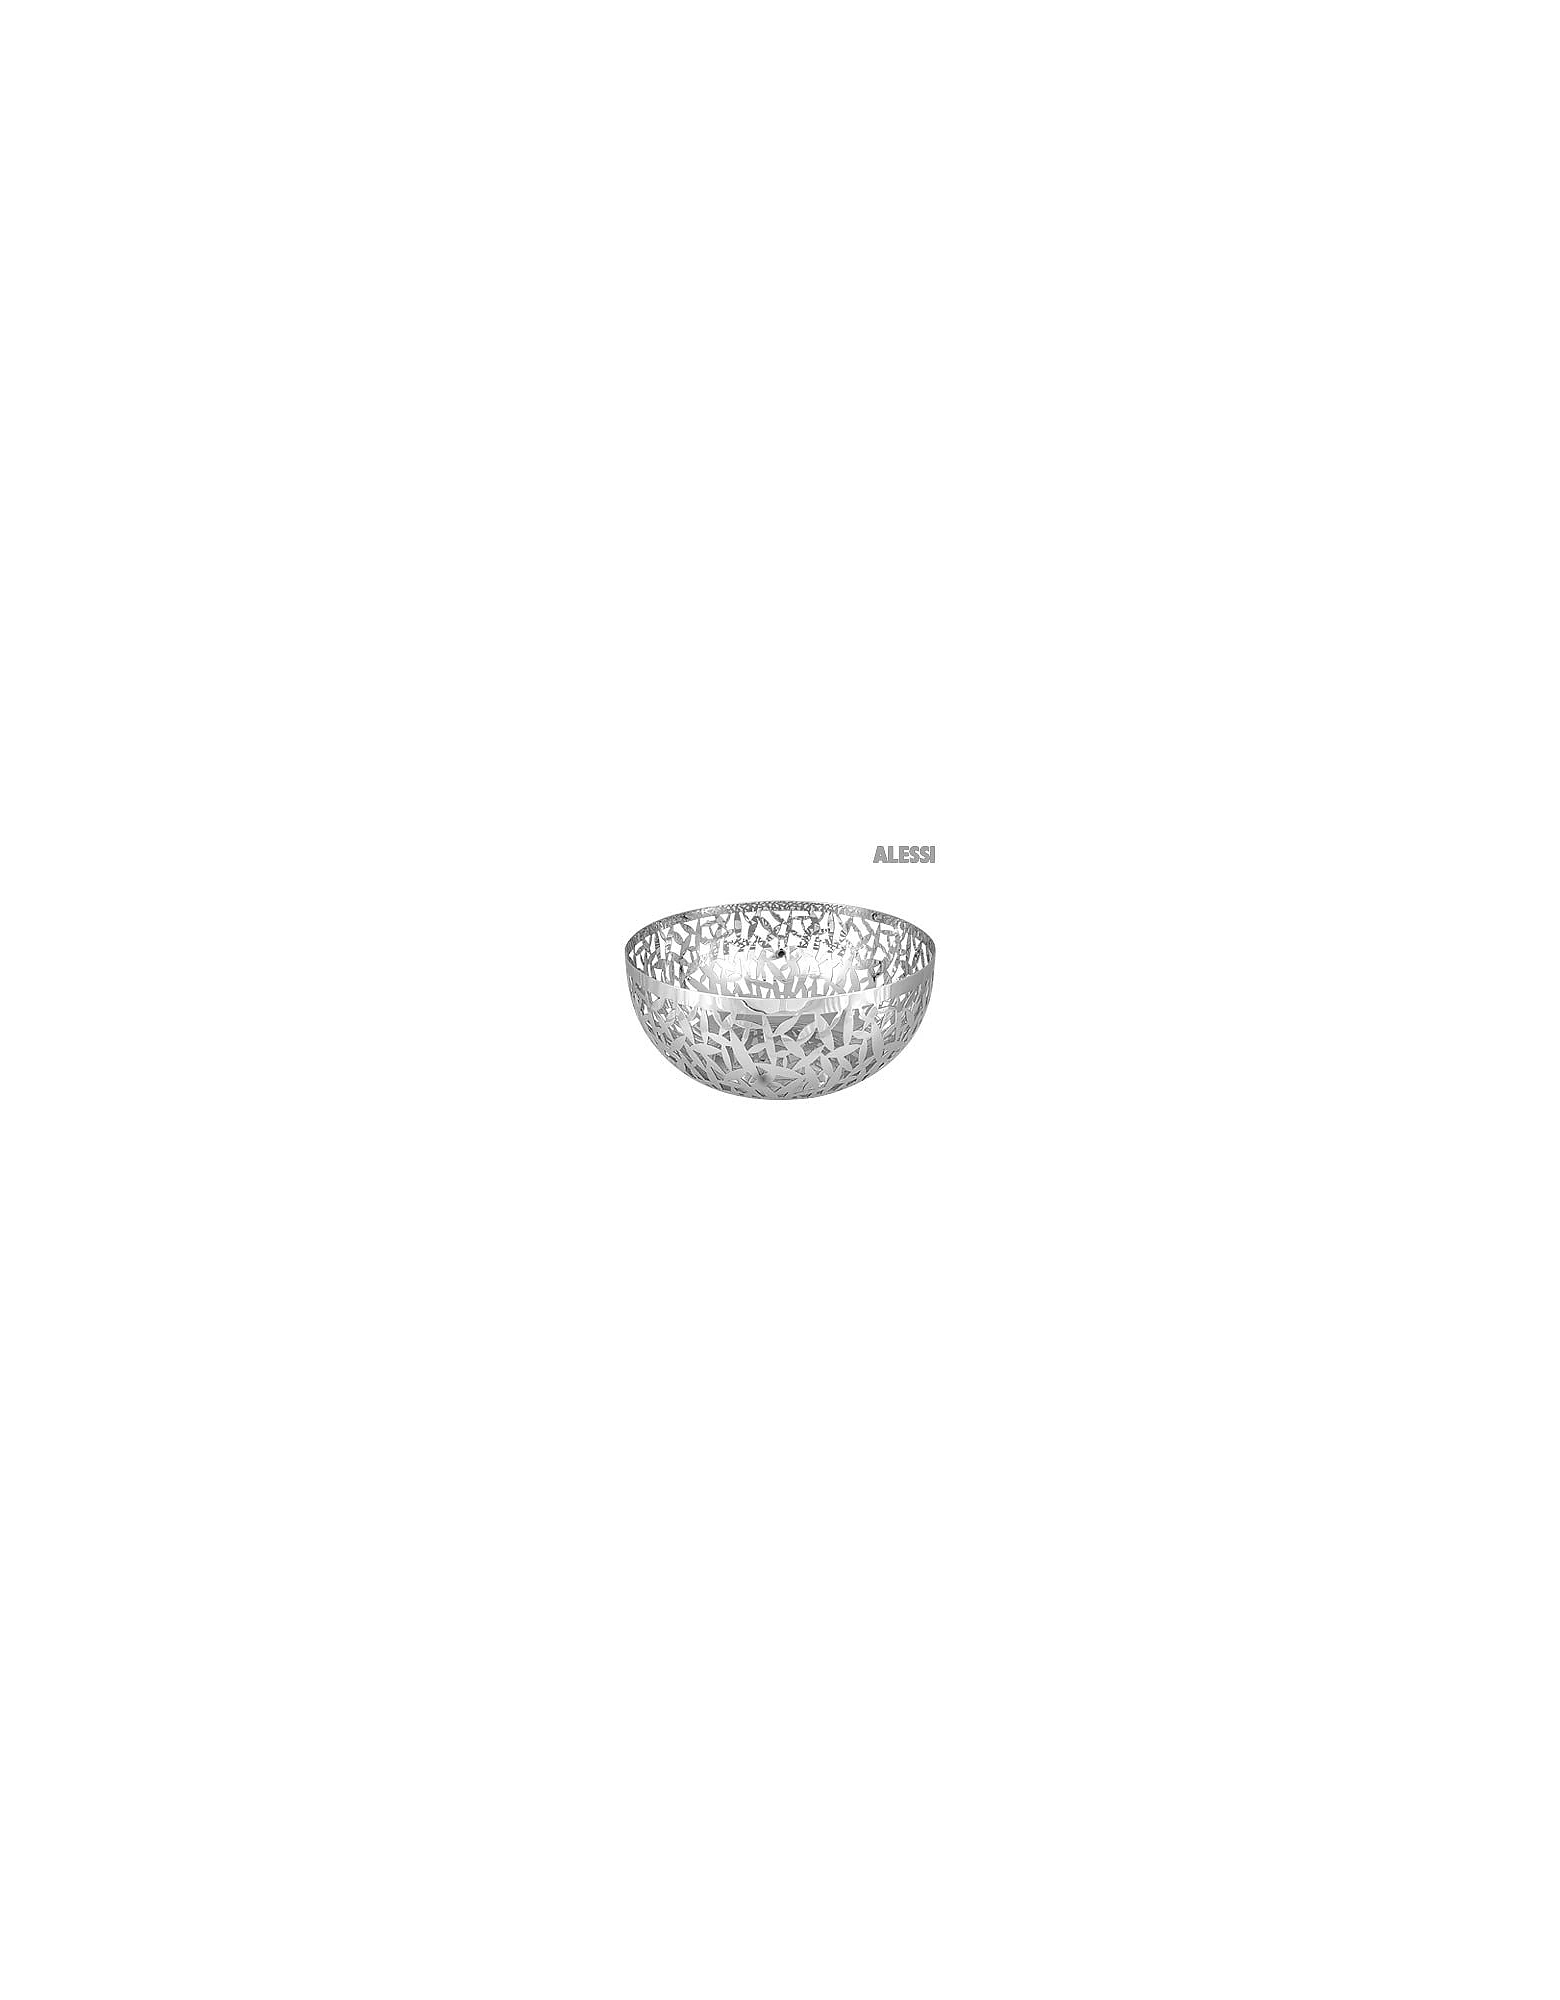 Alessi Designer Kitchen & Dining, Cactus Perforated Stainless Steel Fruit Bowl al38473-030-00